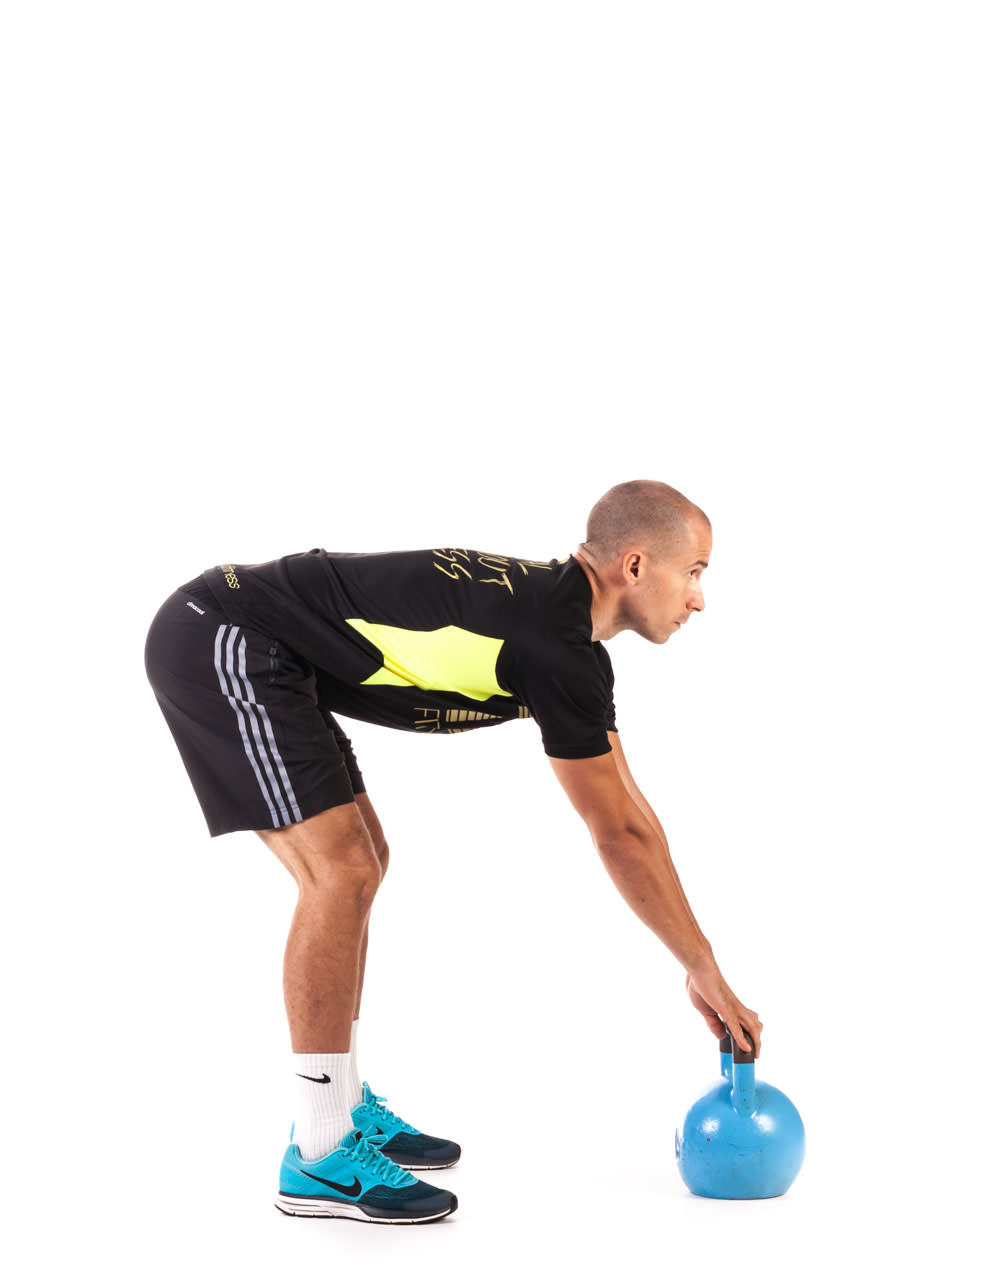 Two-Arm Kettlebell Swing frame #5